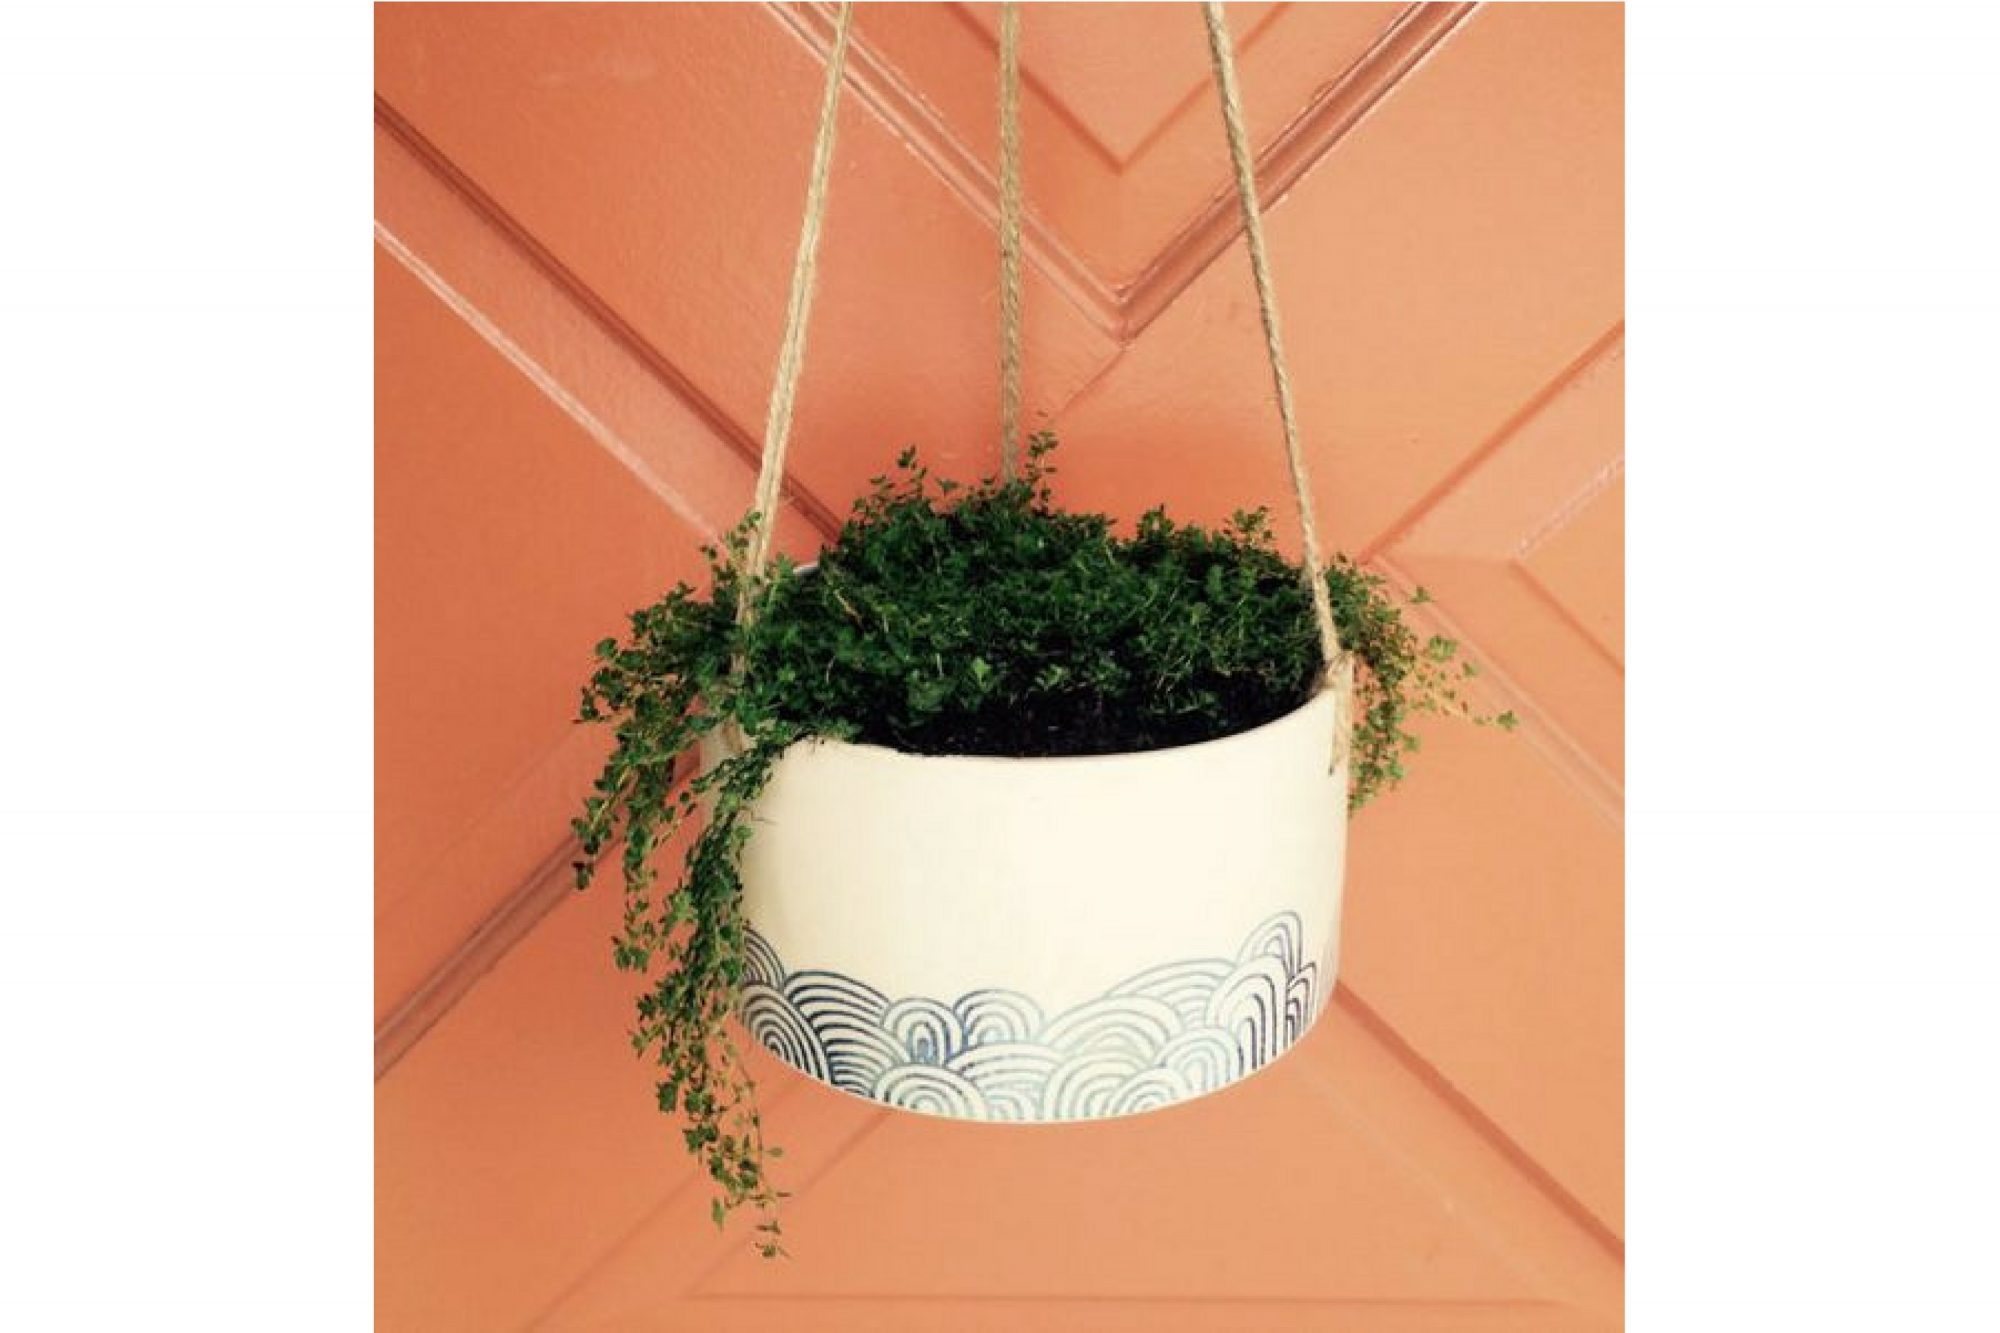 Pots for Indoor Plants ceramic painted